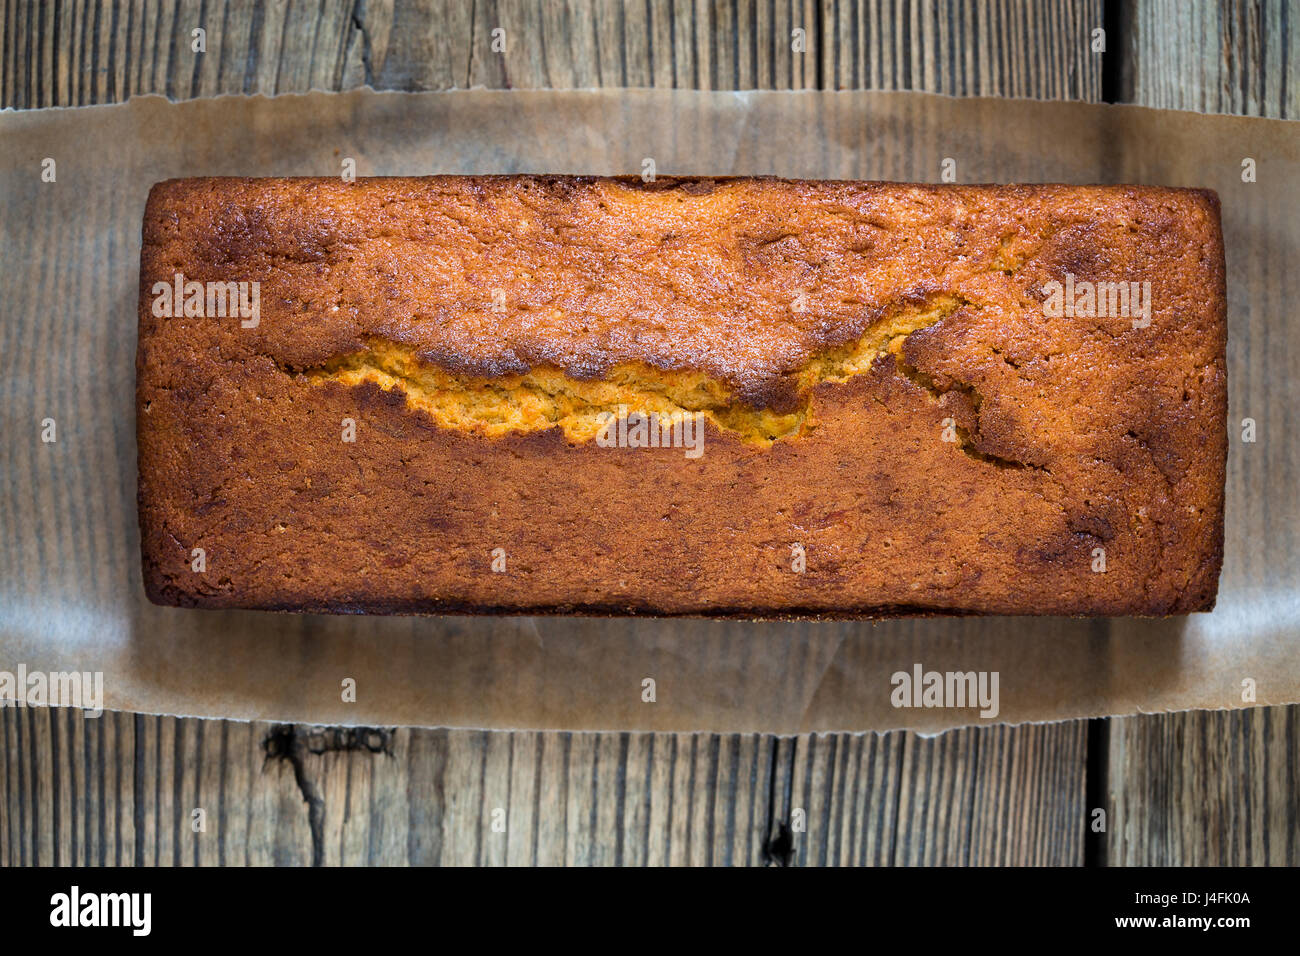 Homemade pound cake baked in a loaf pan on a wooden board  viewed from above - Stock Image